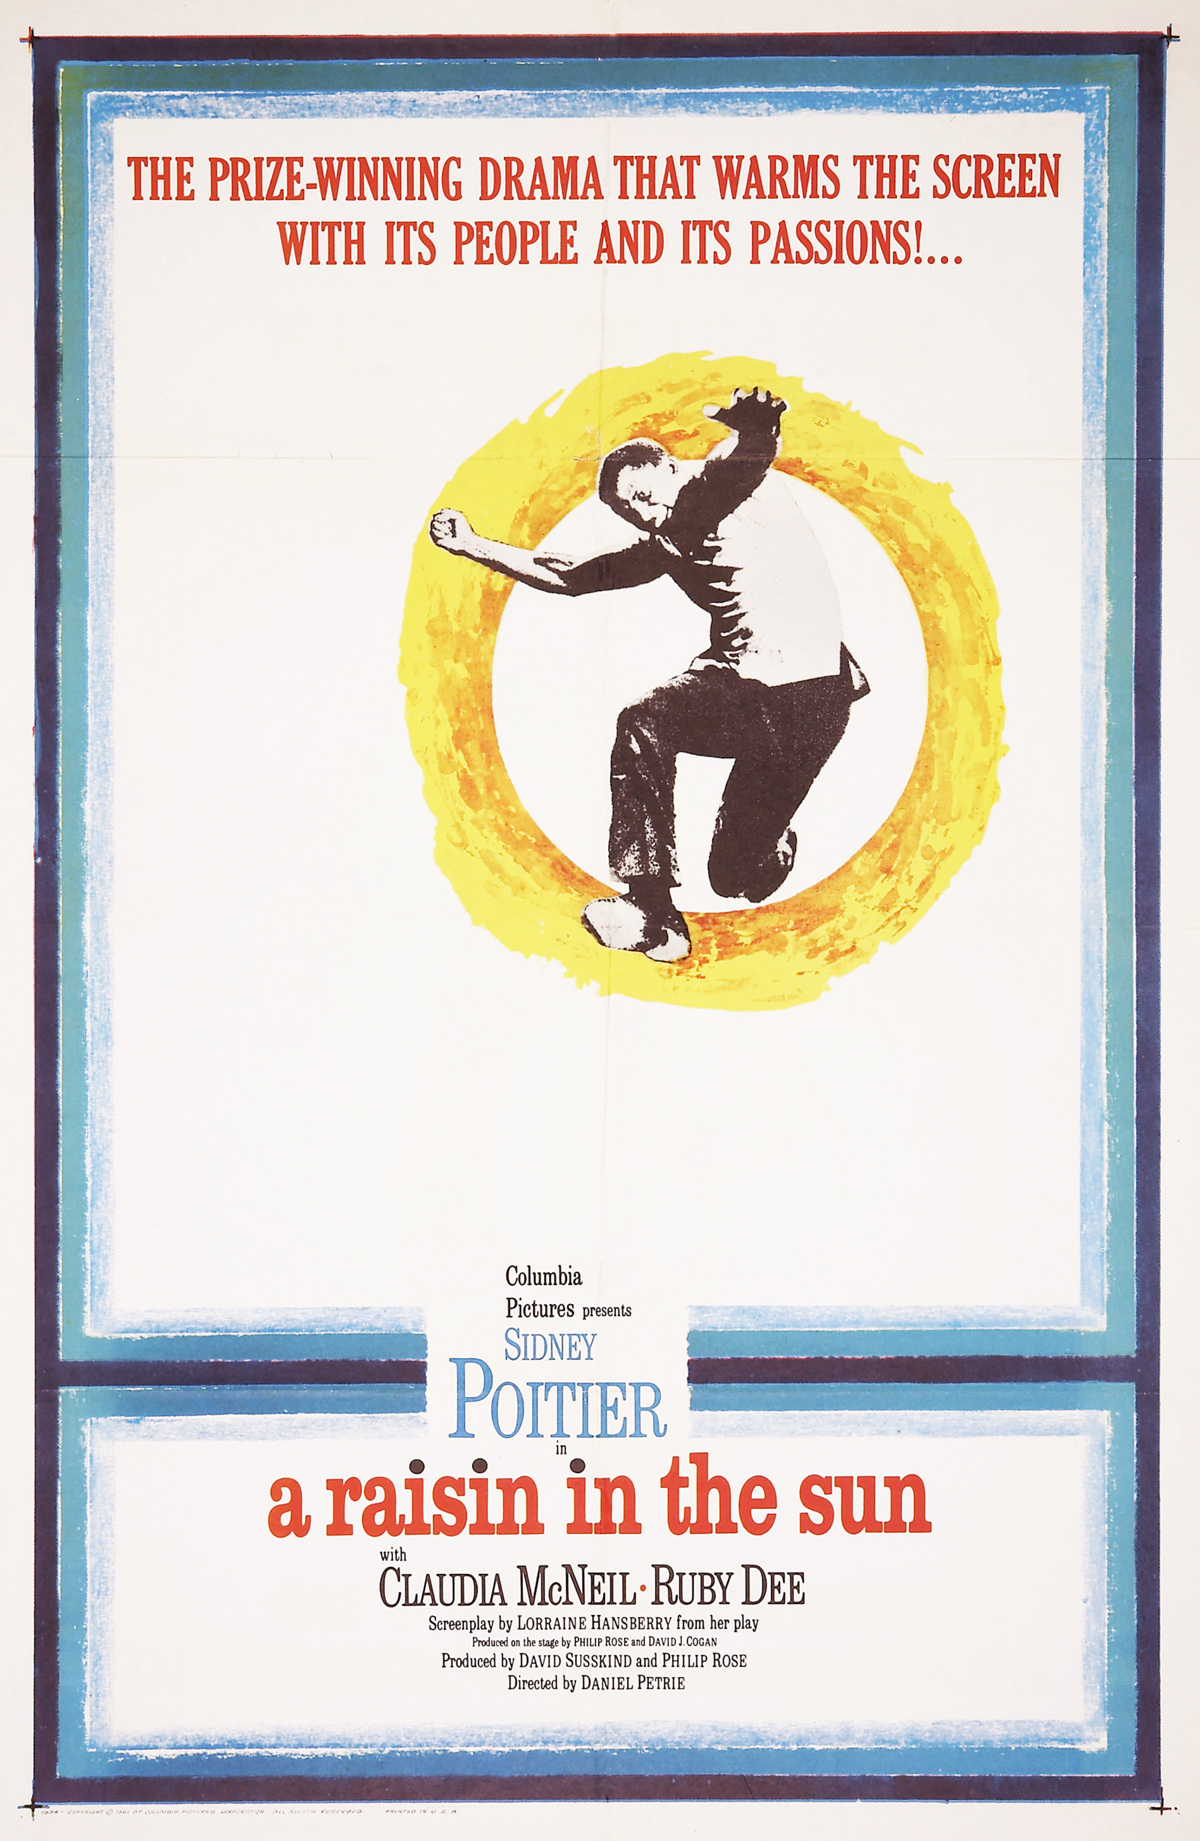 a raisin in the sun lorraine hansberry literary trust in 1961 columbia pictures released a film version of a raisin in the sun featuring the original broadway cast of sidney poitier ruby dee claudia mcneil